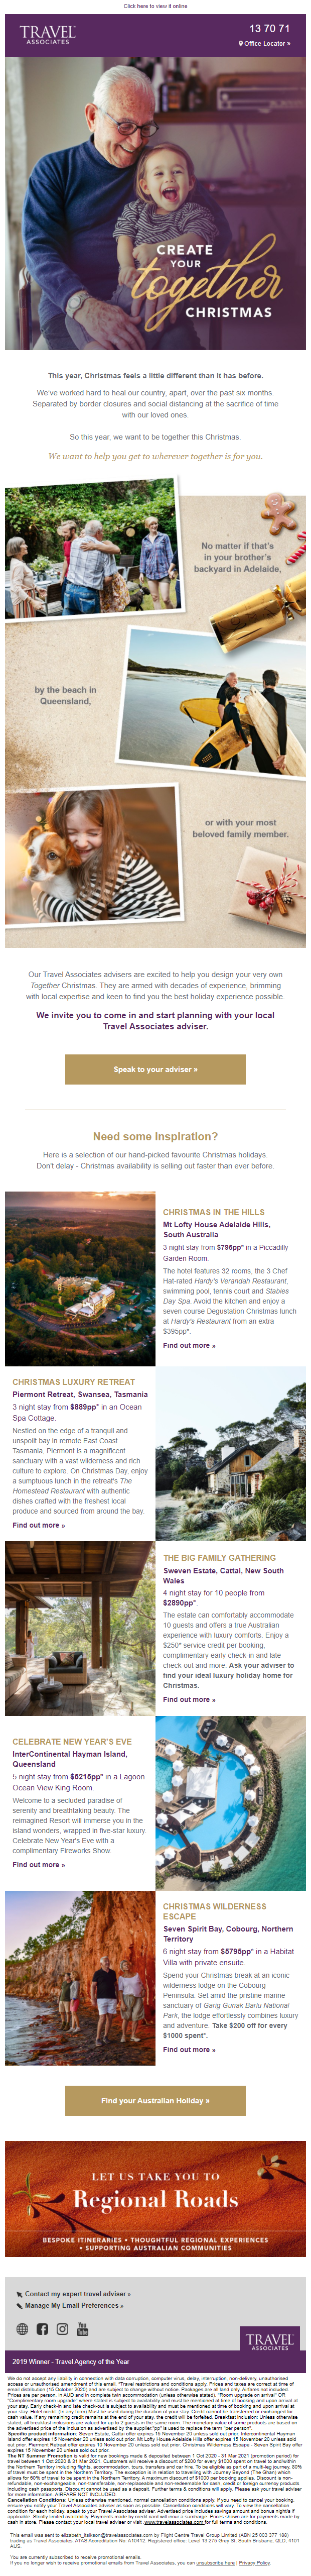 Create Your Together Christmas by Travel Associates